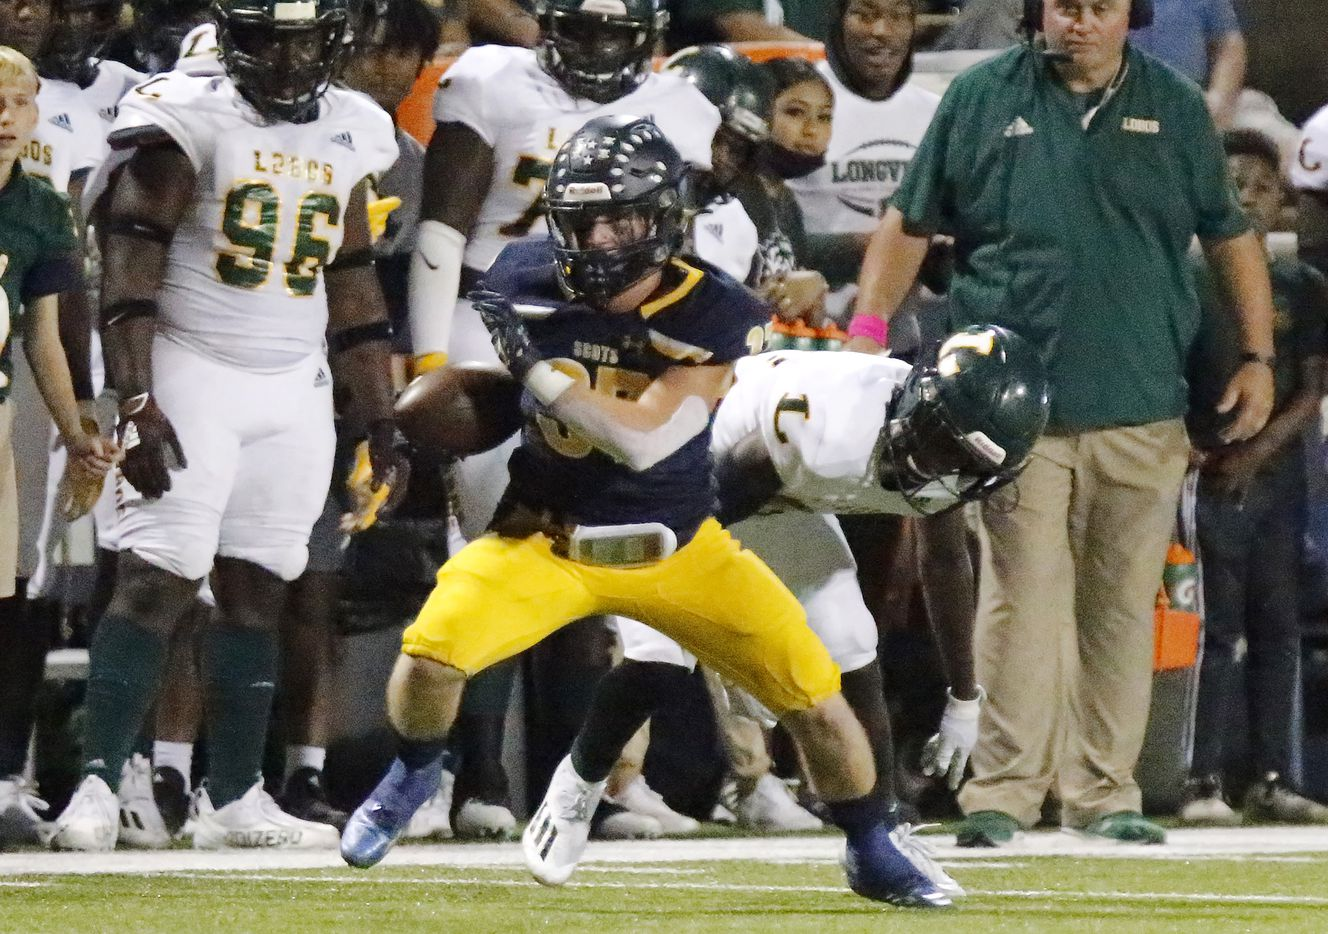 Highland Park High School running back Jay Cox (37) catches a pass and breaks away during the second half as Highland Park High School hosted Longview High School at Highlander Stadium in Dallas on Friday night, October 8, 2021. (Stewart F. House/Special Contributor)